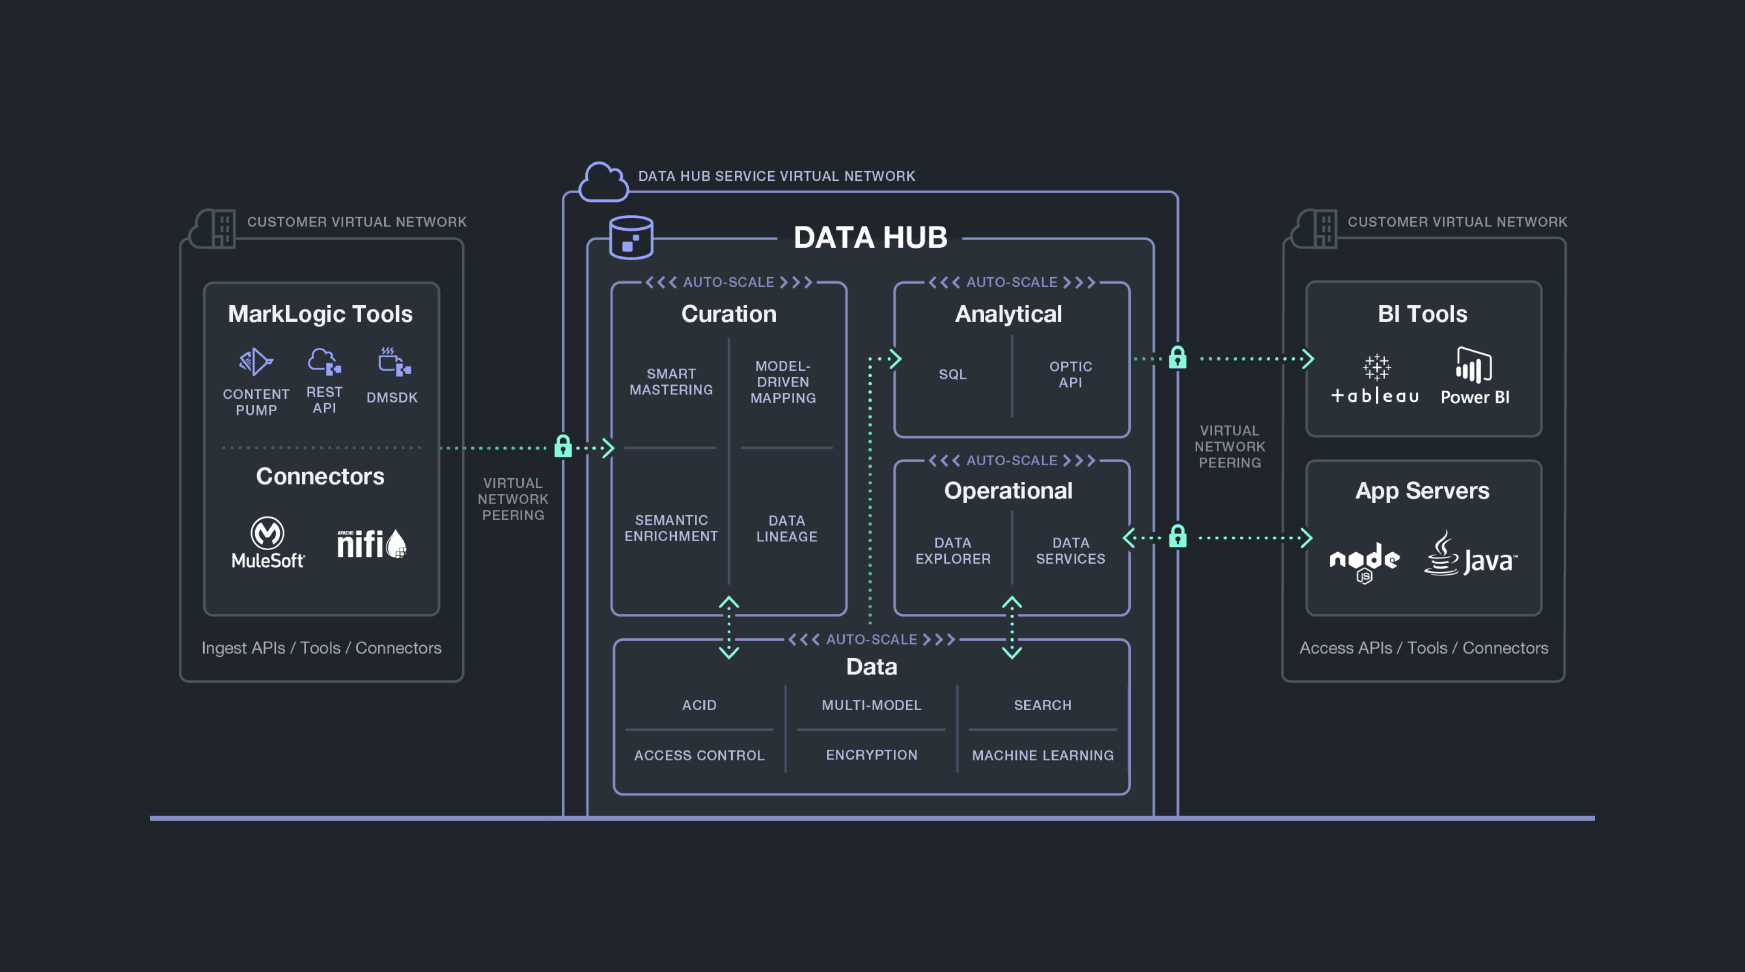 Fig 02 - MarkLogic Data Hub components